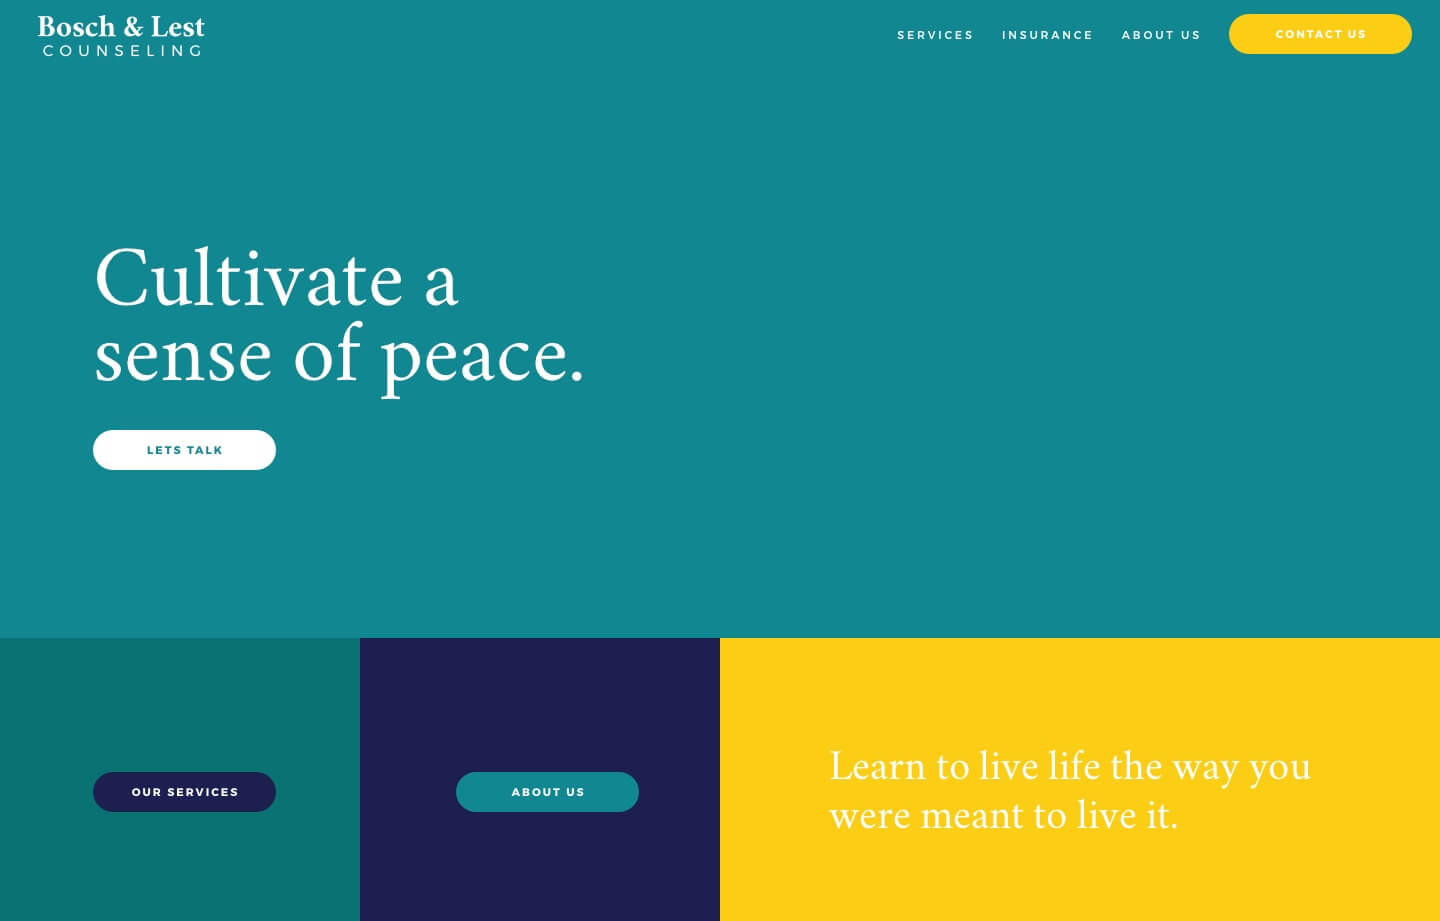 Bosch and Lest Counseling center website